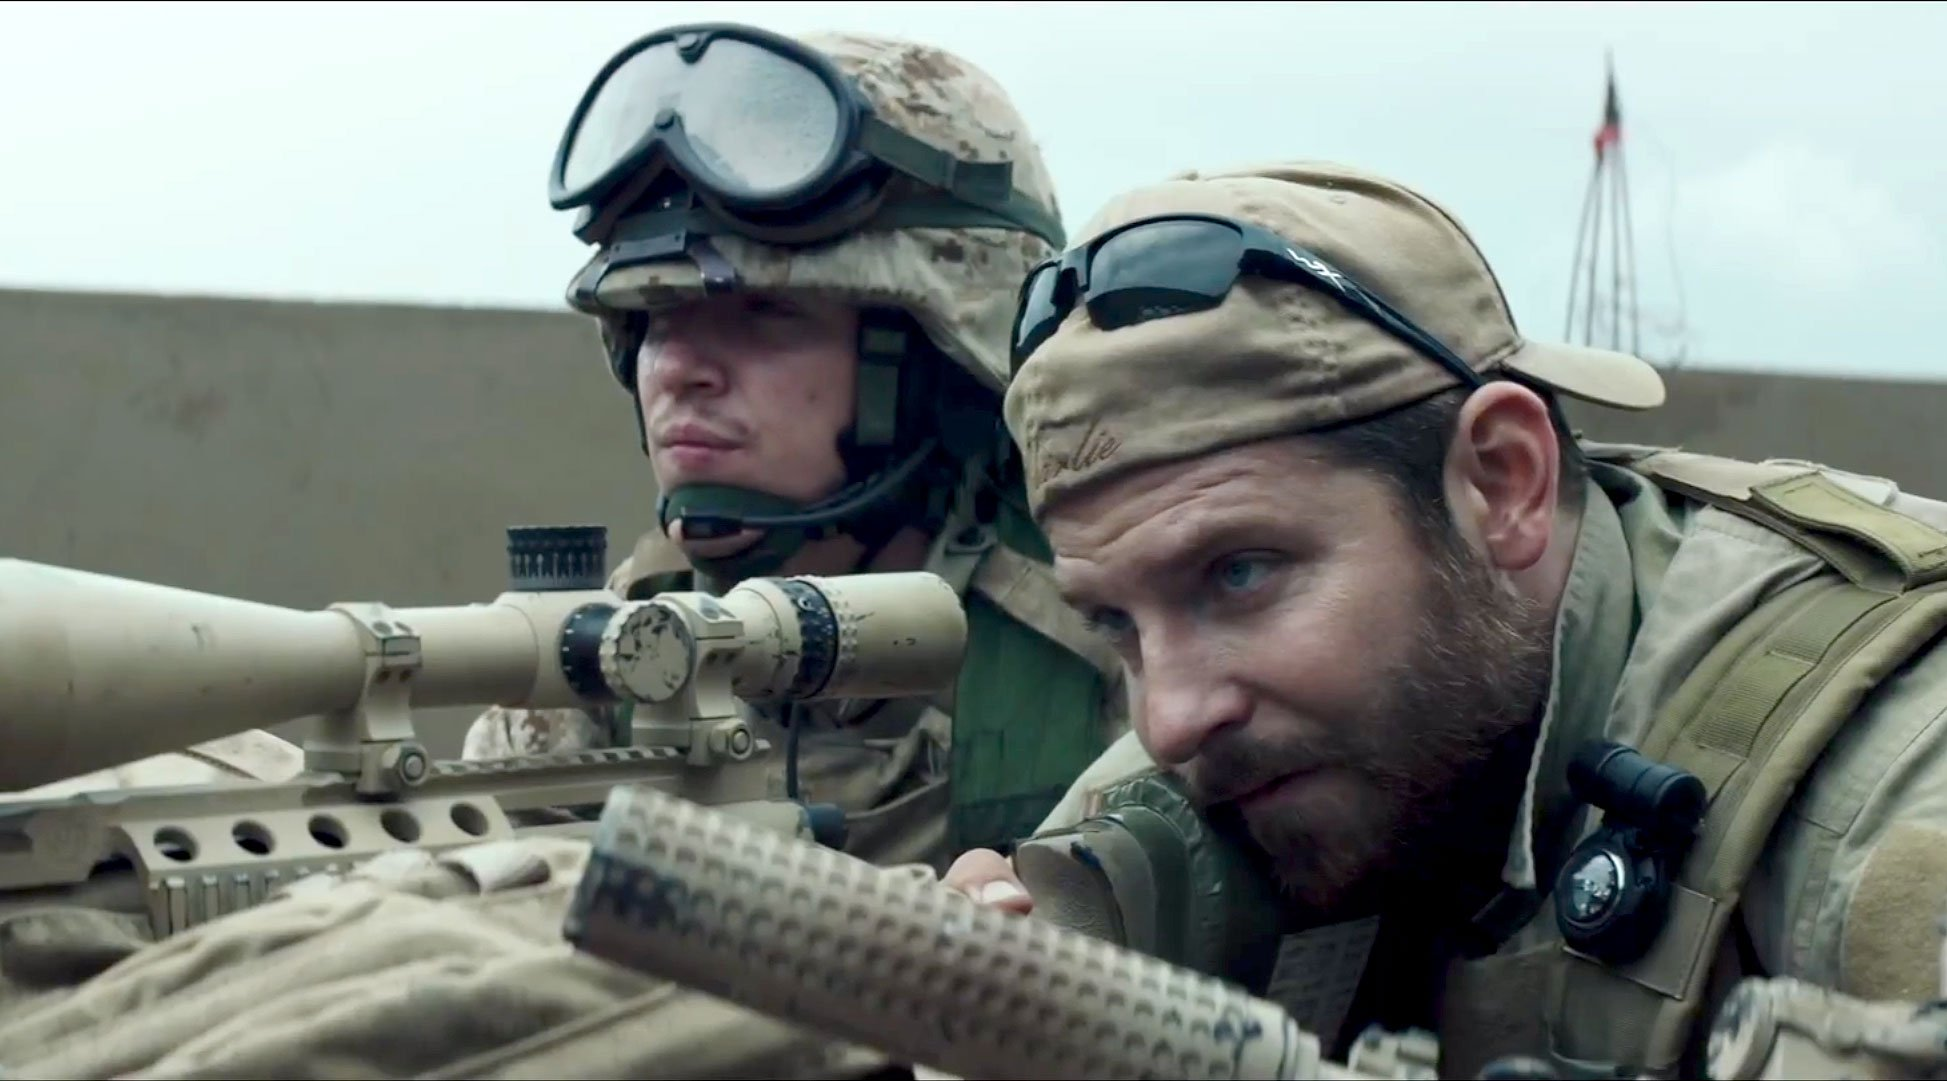 American Sniper is on course to become the biggest earning war movie of all time. Though audiences outside the US are less eager.